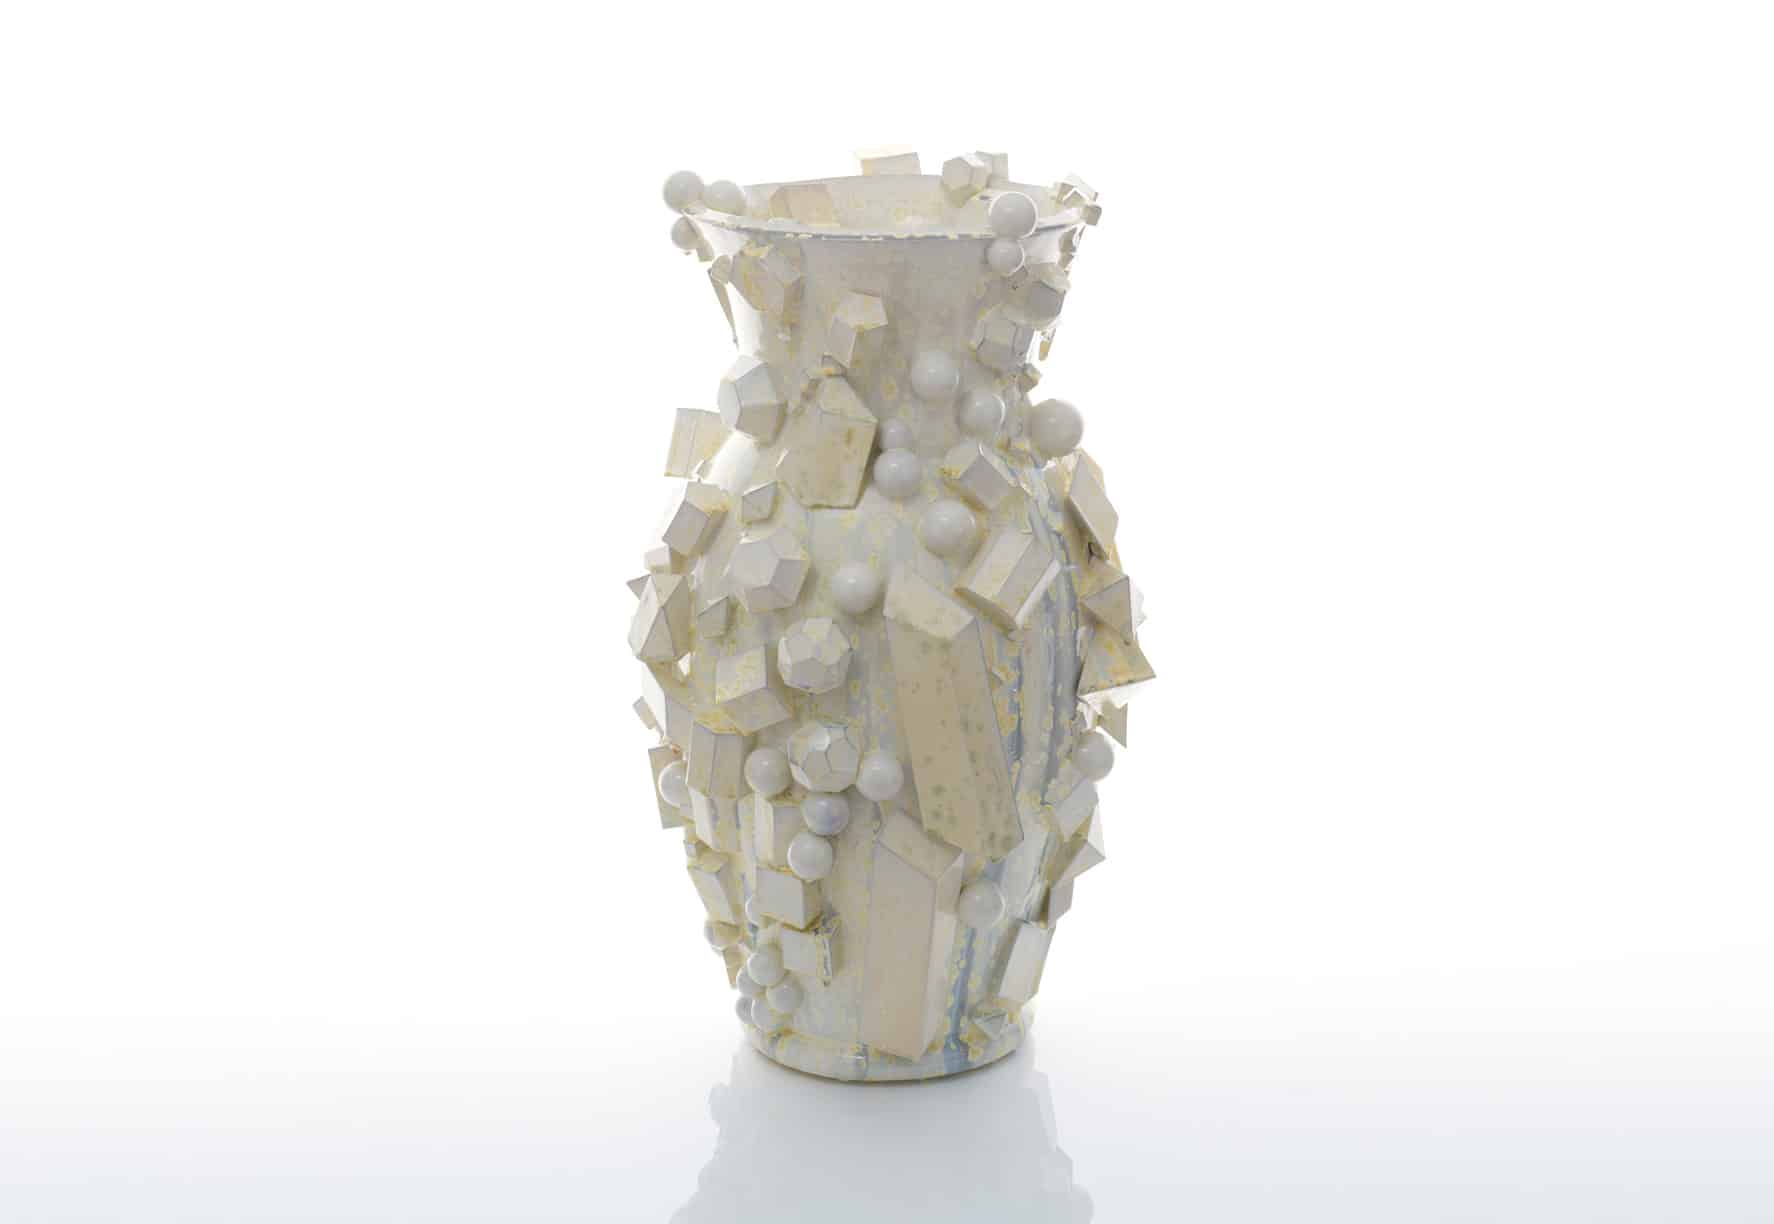 Sculptural vase by Kate Malone